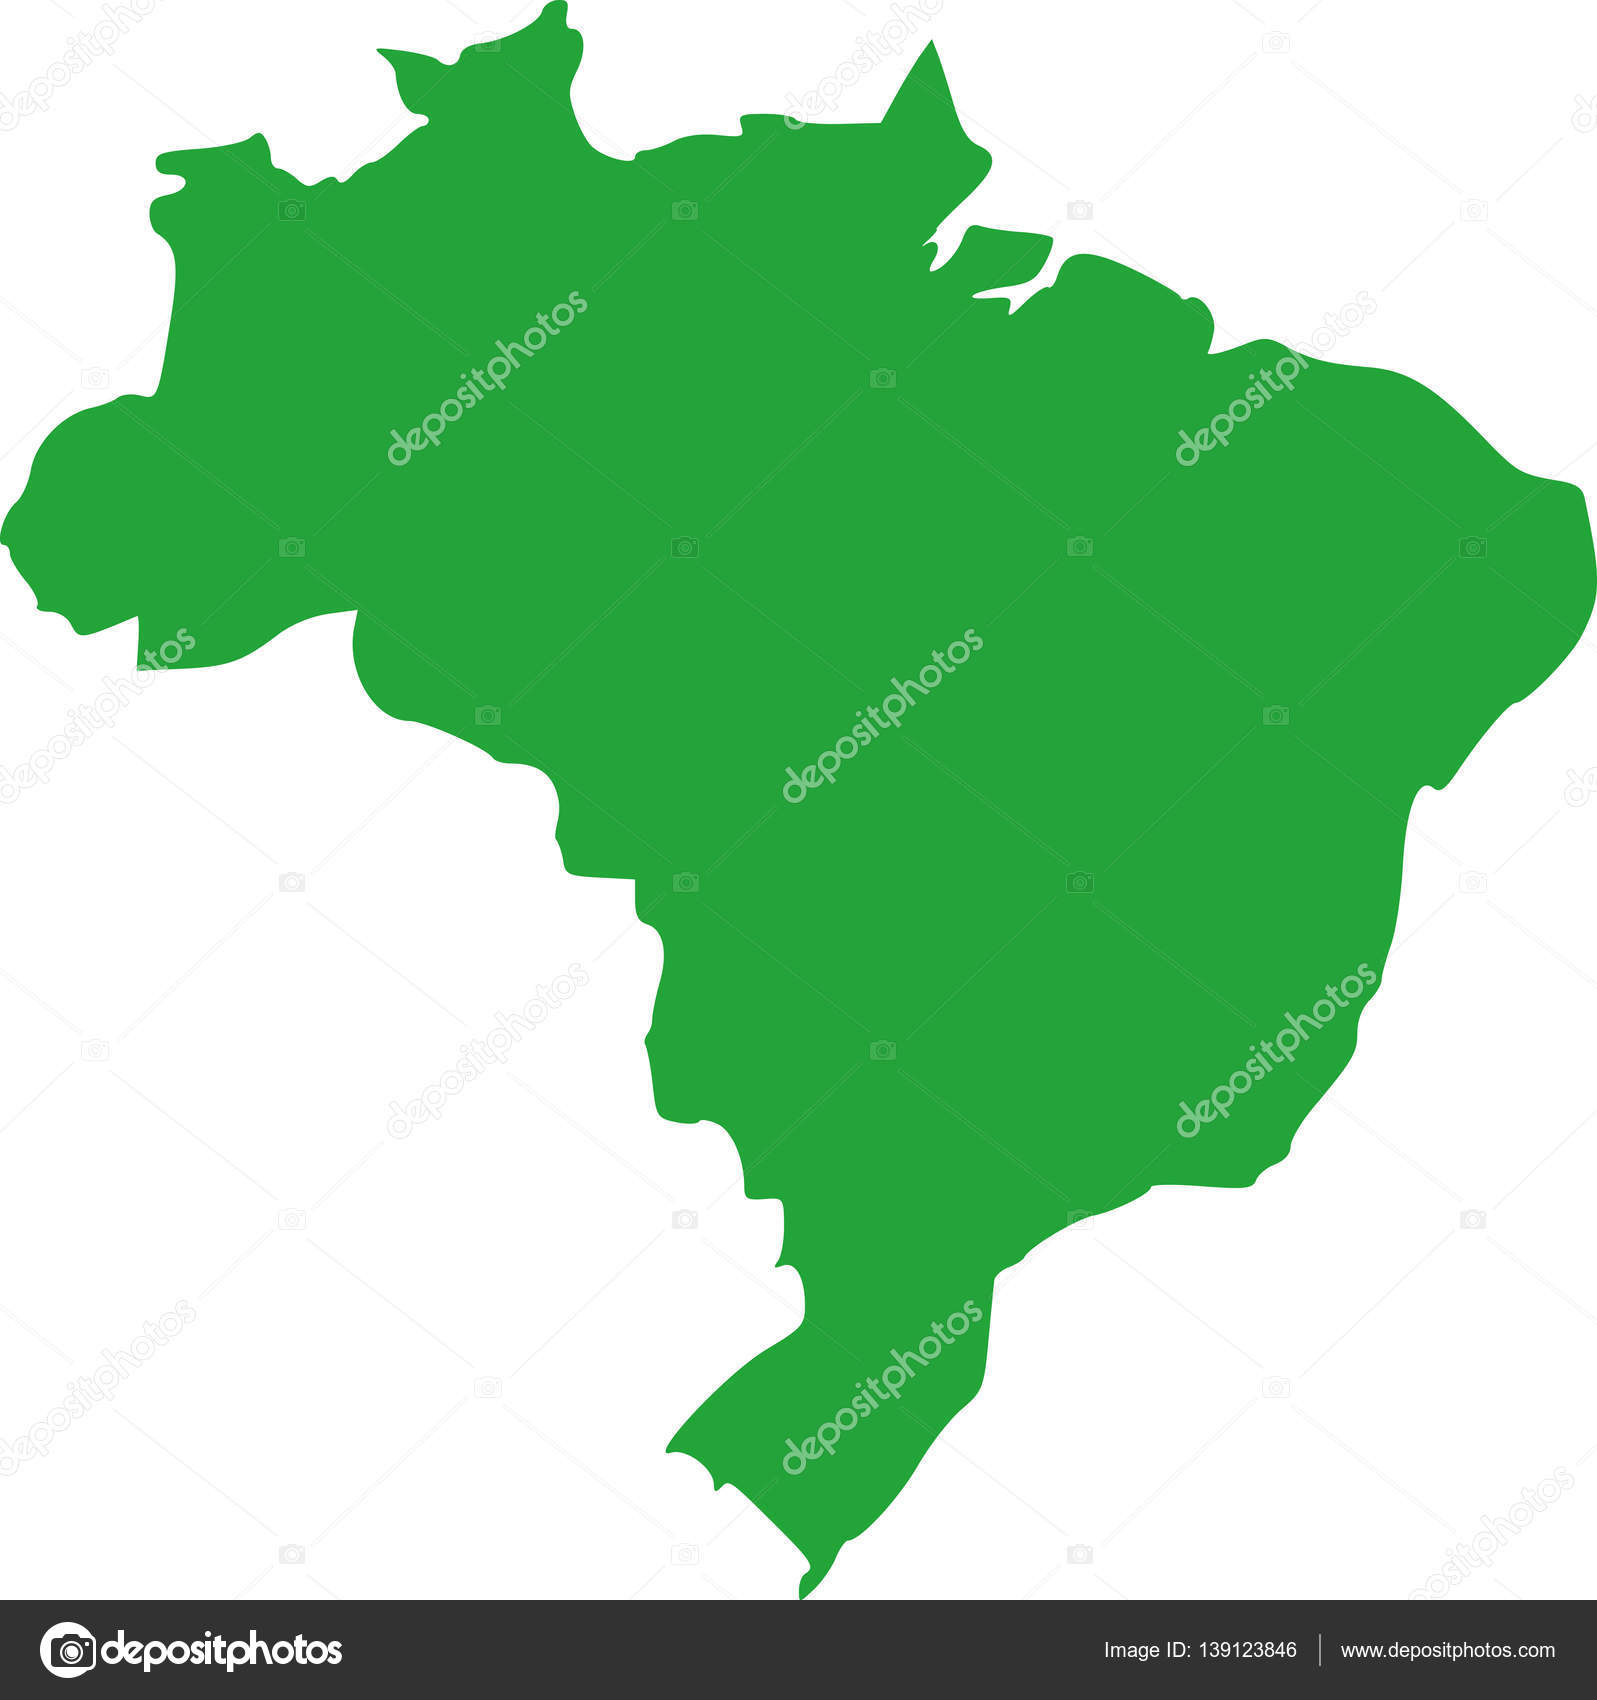 Brasil map vector archivo imgenes vectoriales miceking 139123846 brasil map vector archivo imgenes vectoriales gumiabroncs Choice Image